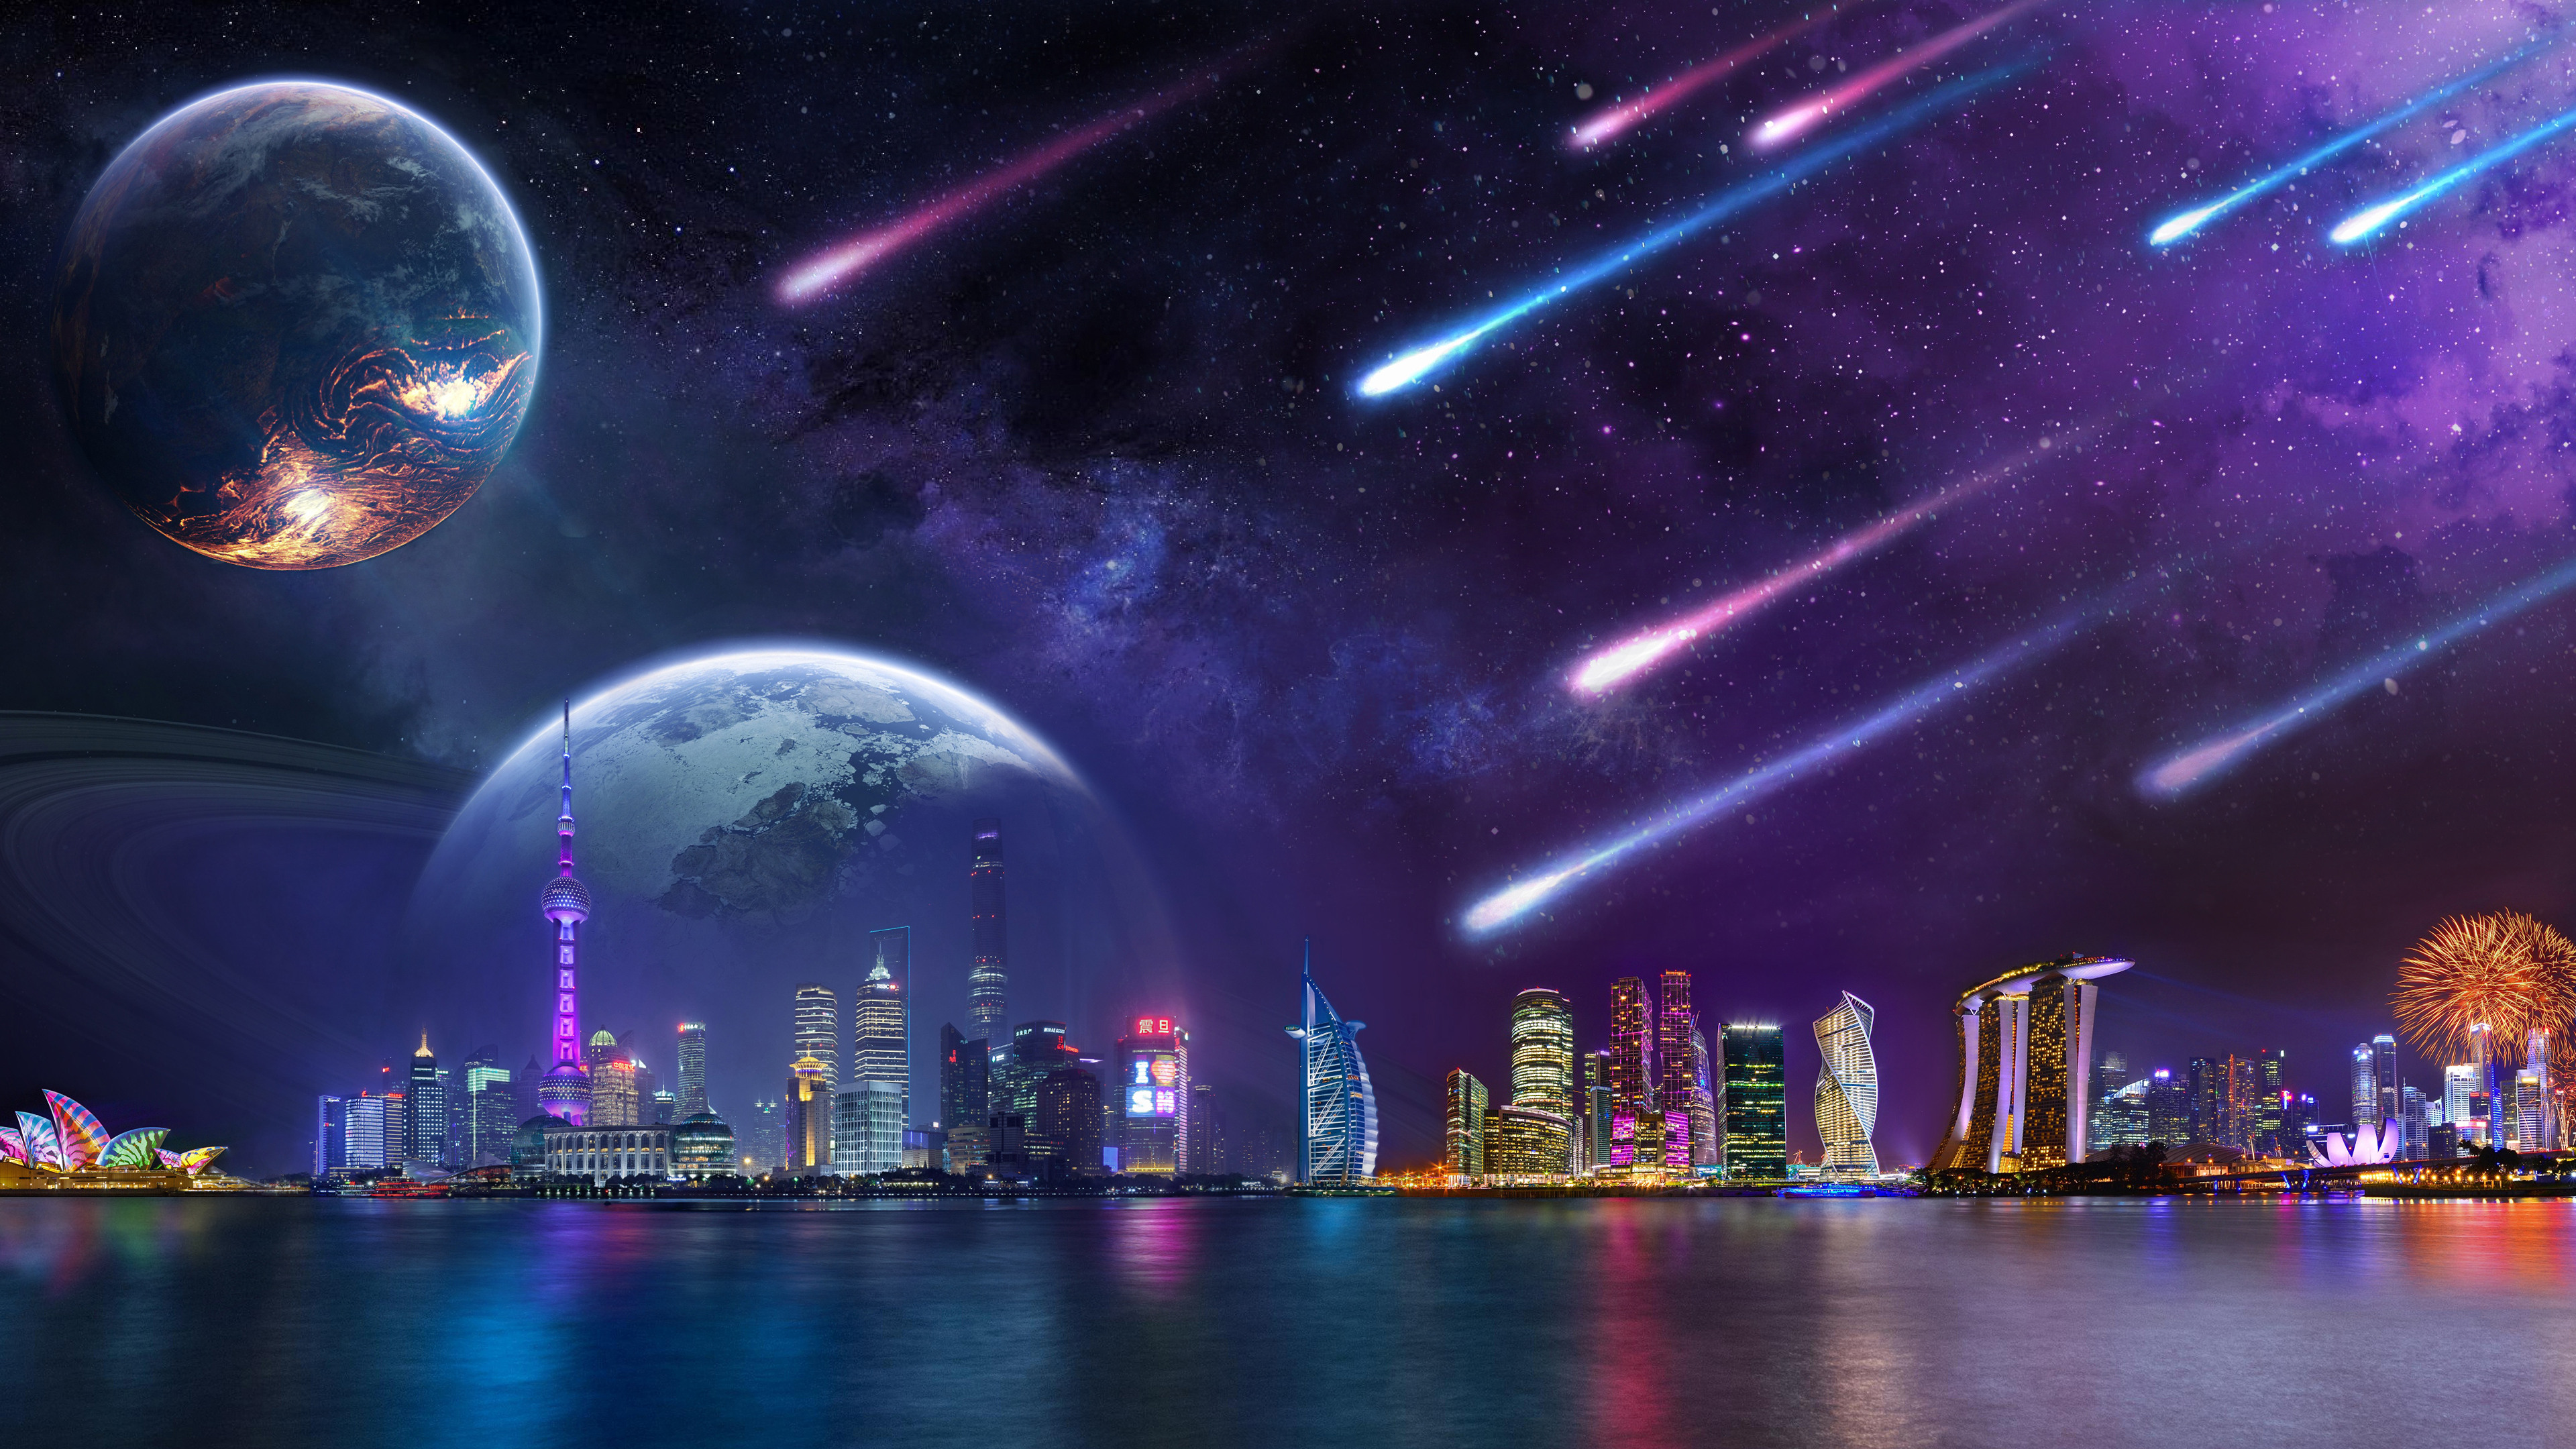 Wallpaper Comet and planets in digital Night city scenery